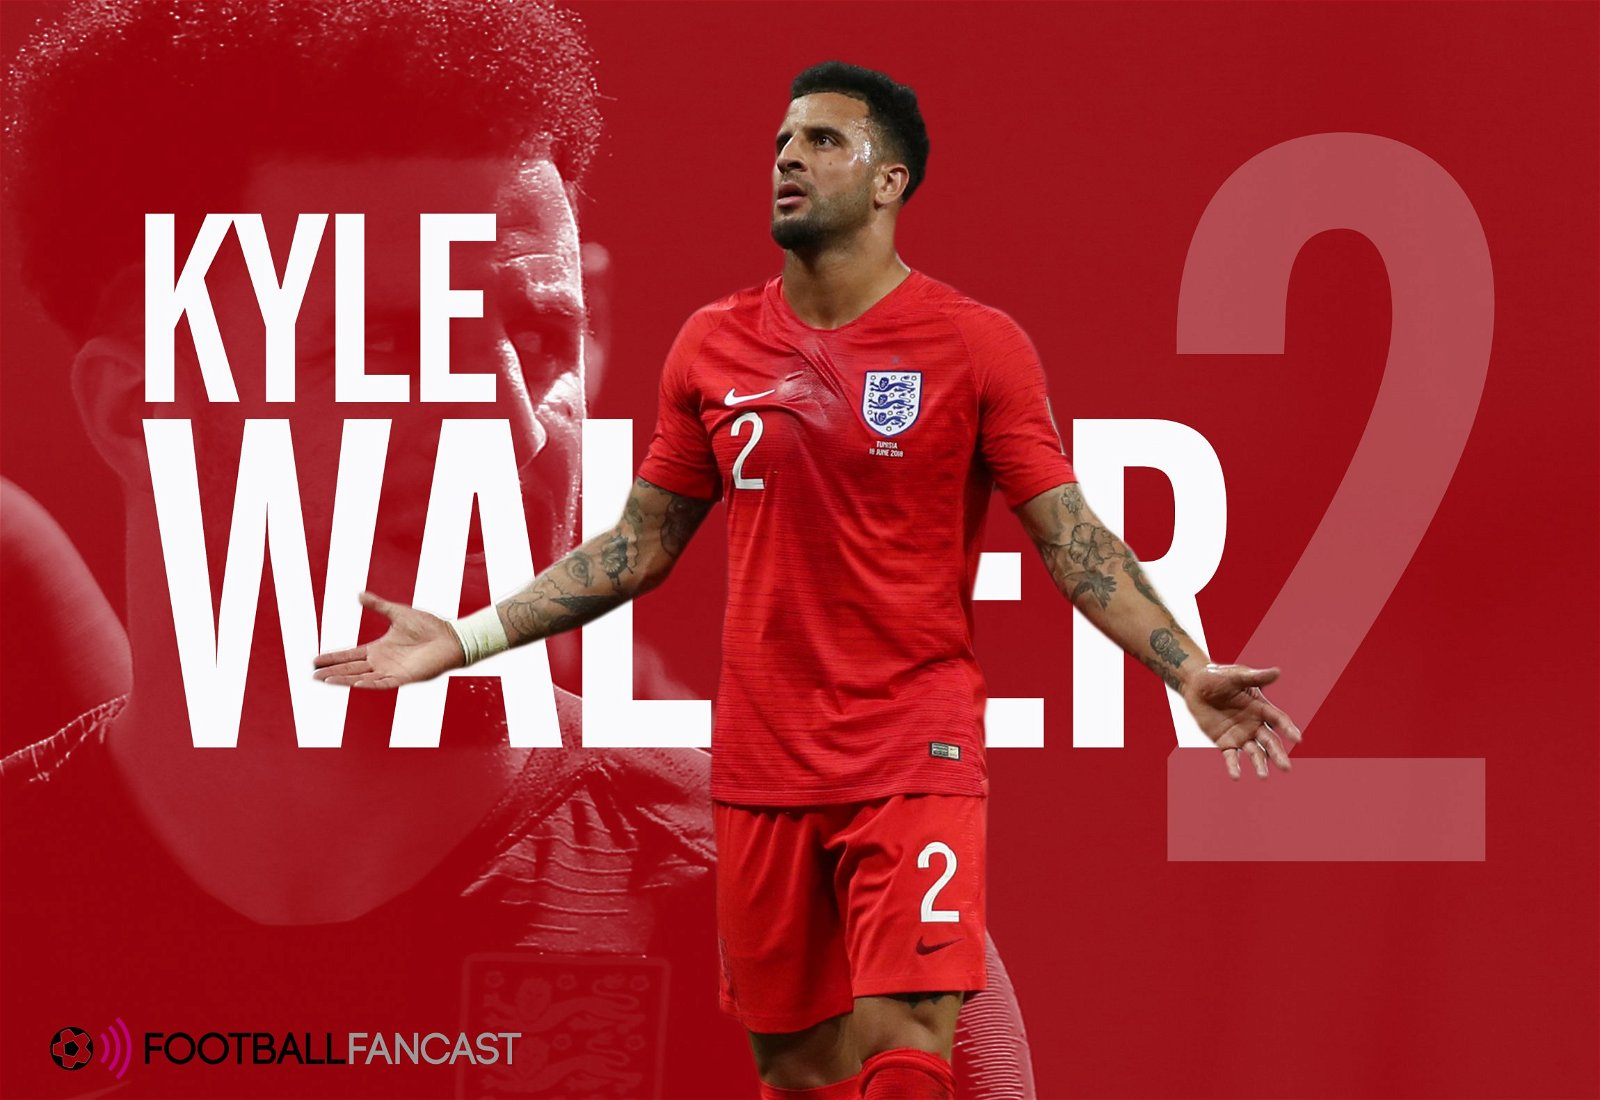 Player Zone: Kyle Walker's England role shows Gareth Southgate's tactical genius